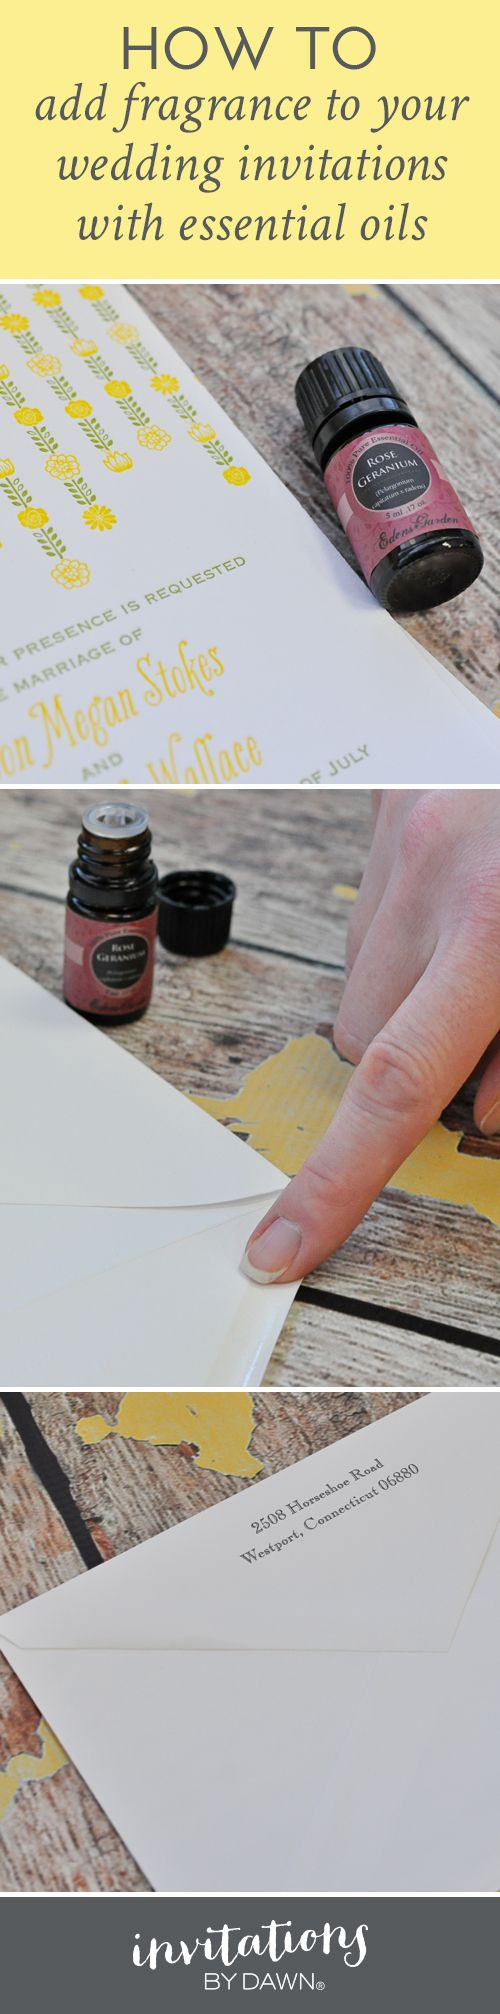 Invitations by Dawn shows brides how to add fragrance to wedding invitations by using essential oils.